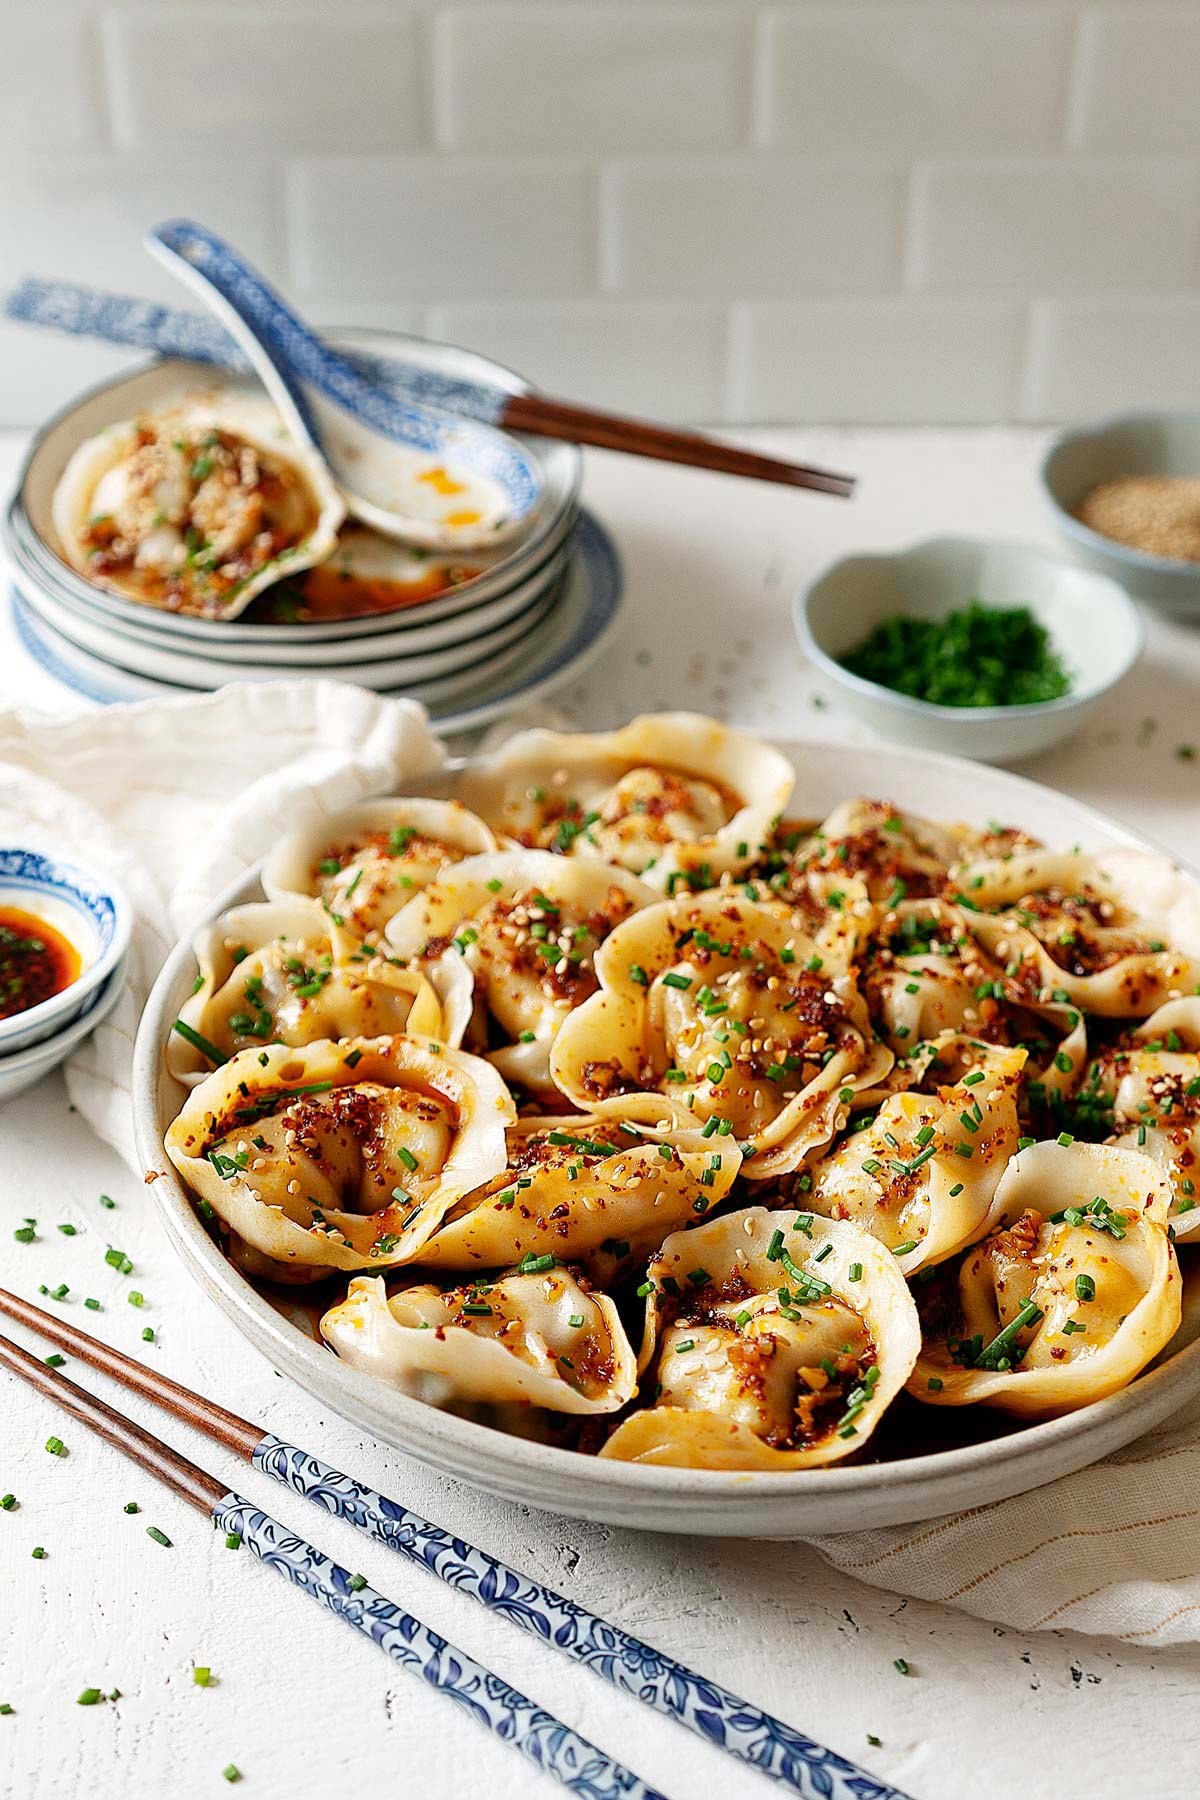 Wontons in garlic chili oil in a plate view from front